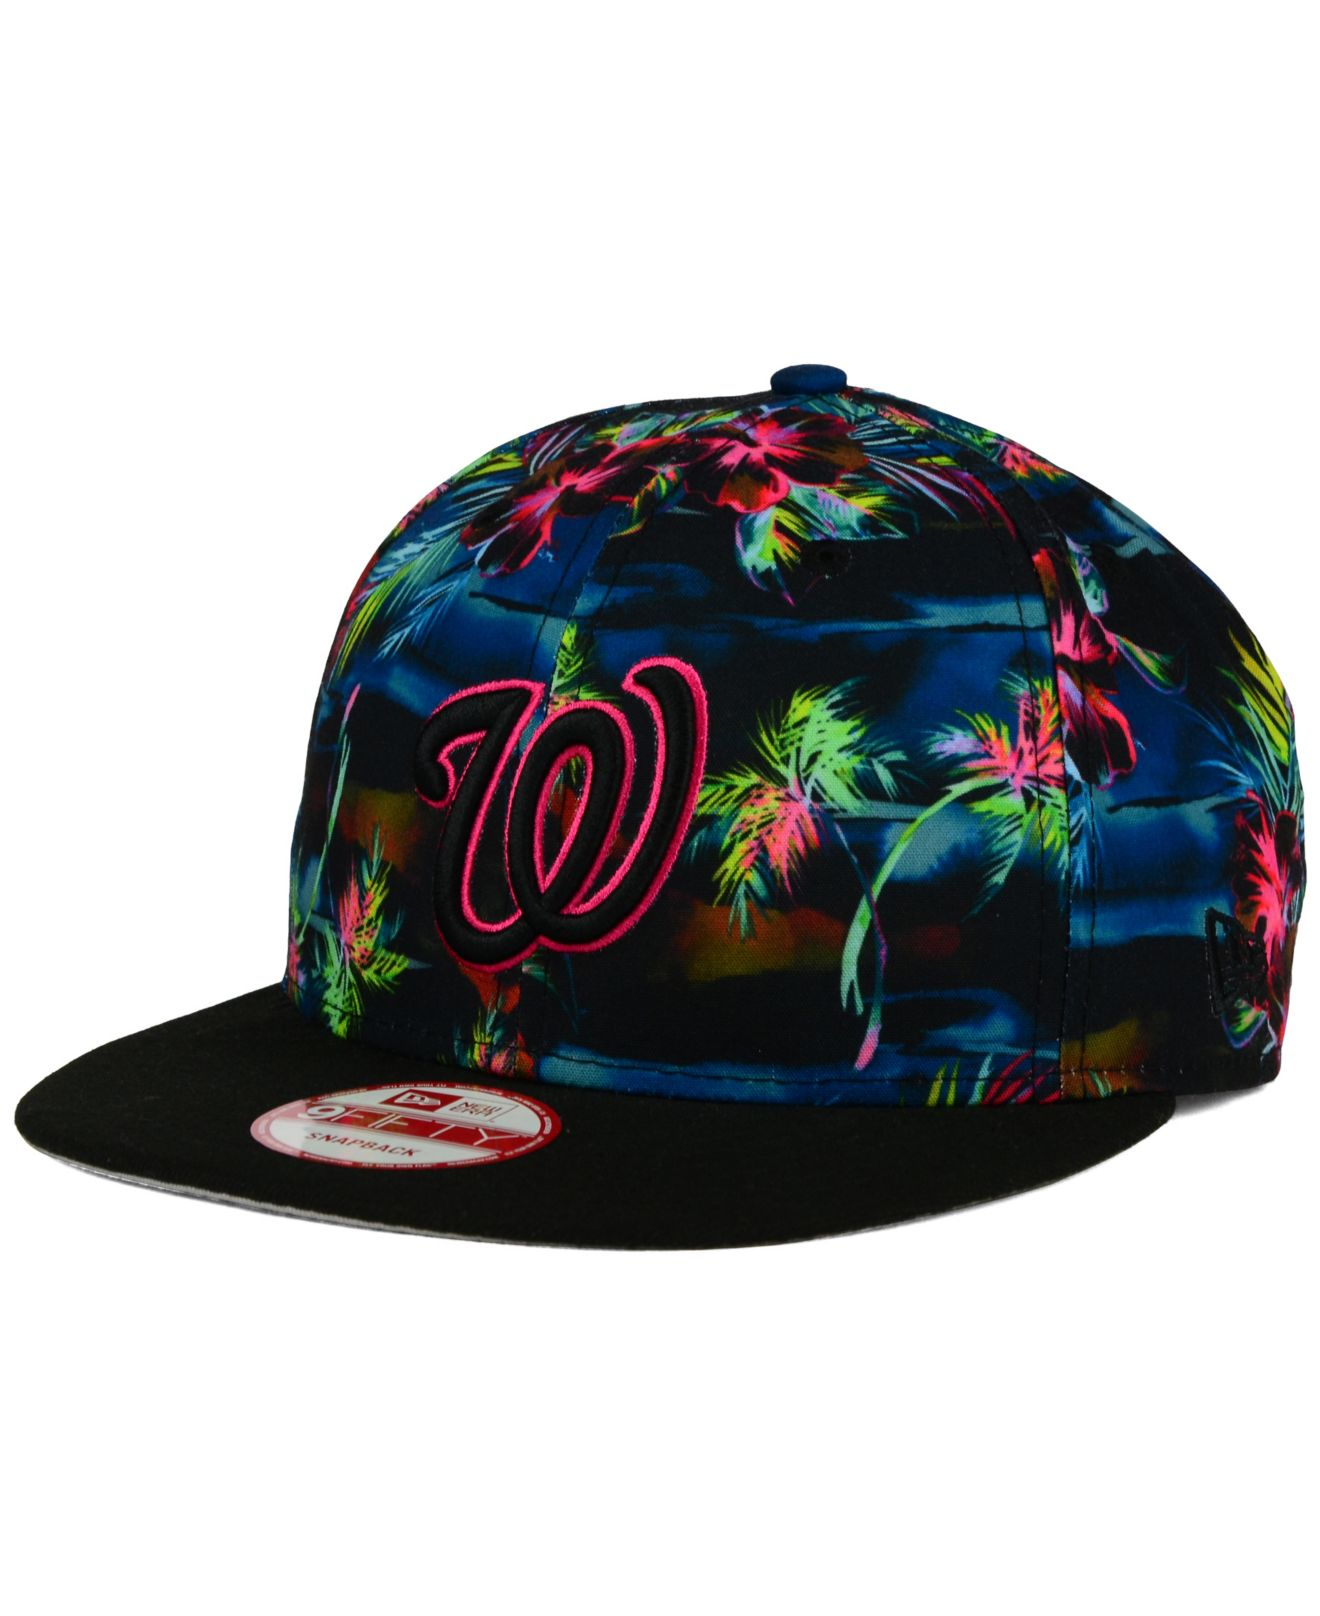 cdf09687555 ... clearance lyst ktz washington nationals dark tropic 9fifty snapback cap  in 48ad0 cf852